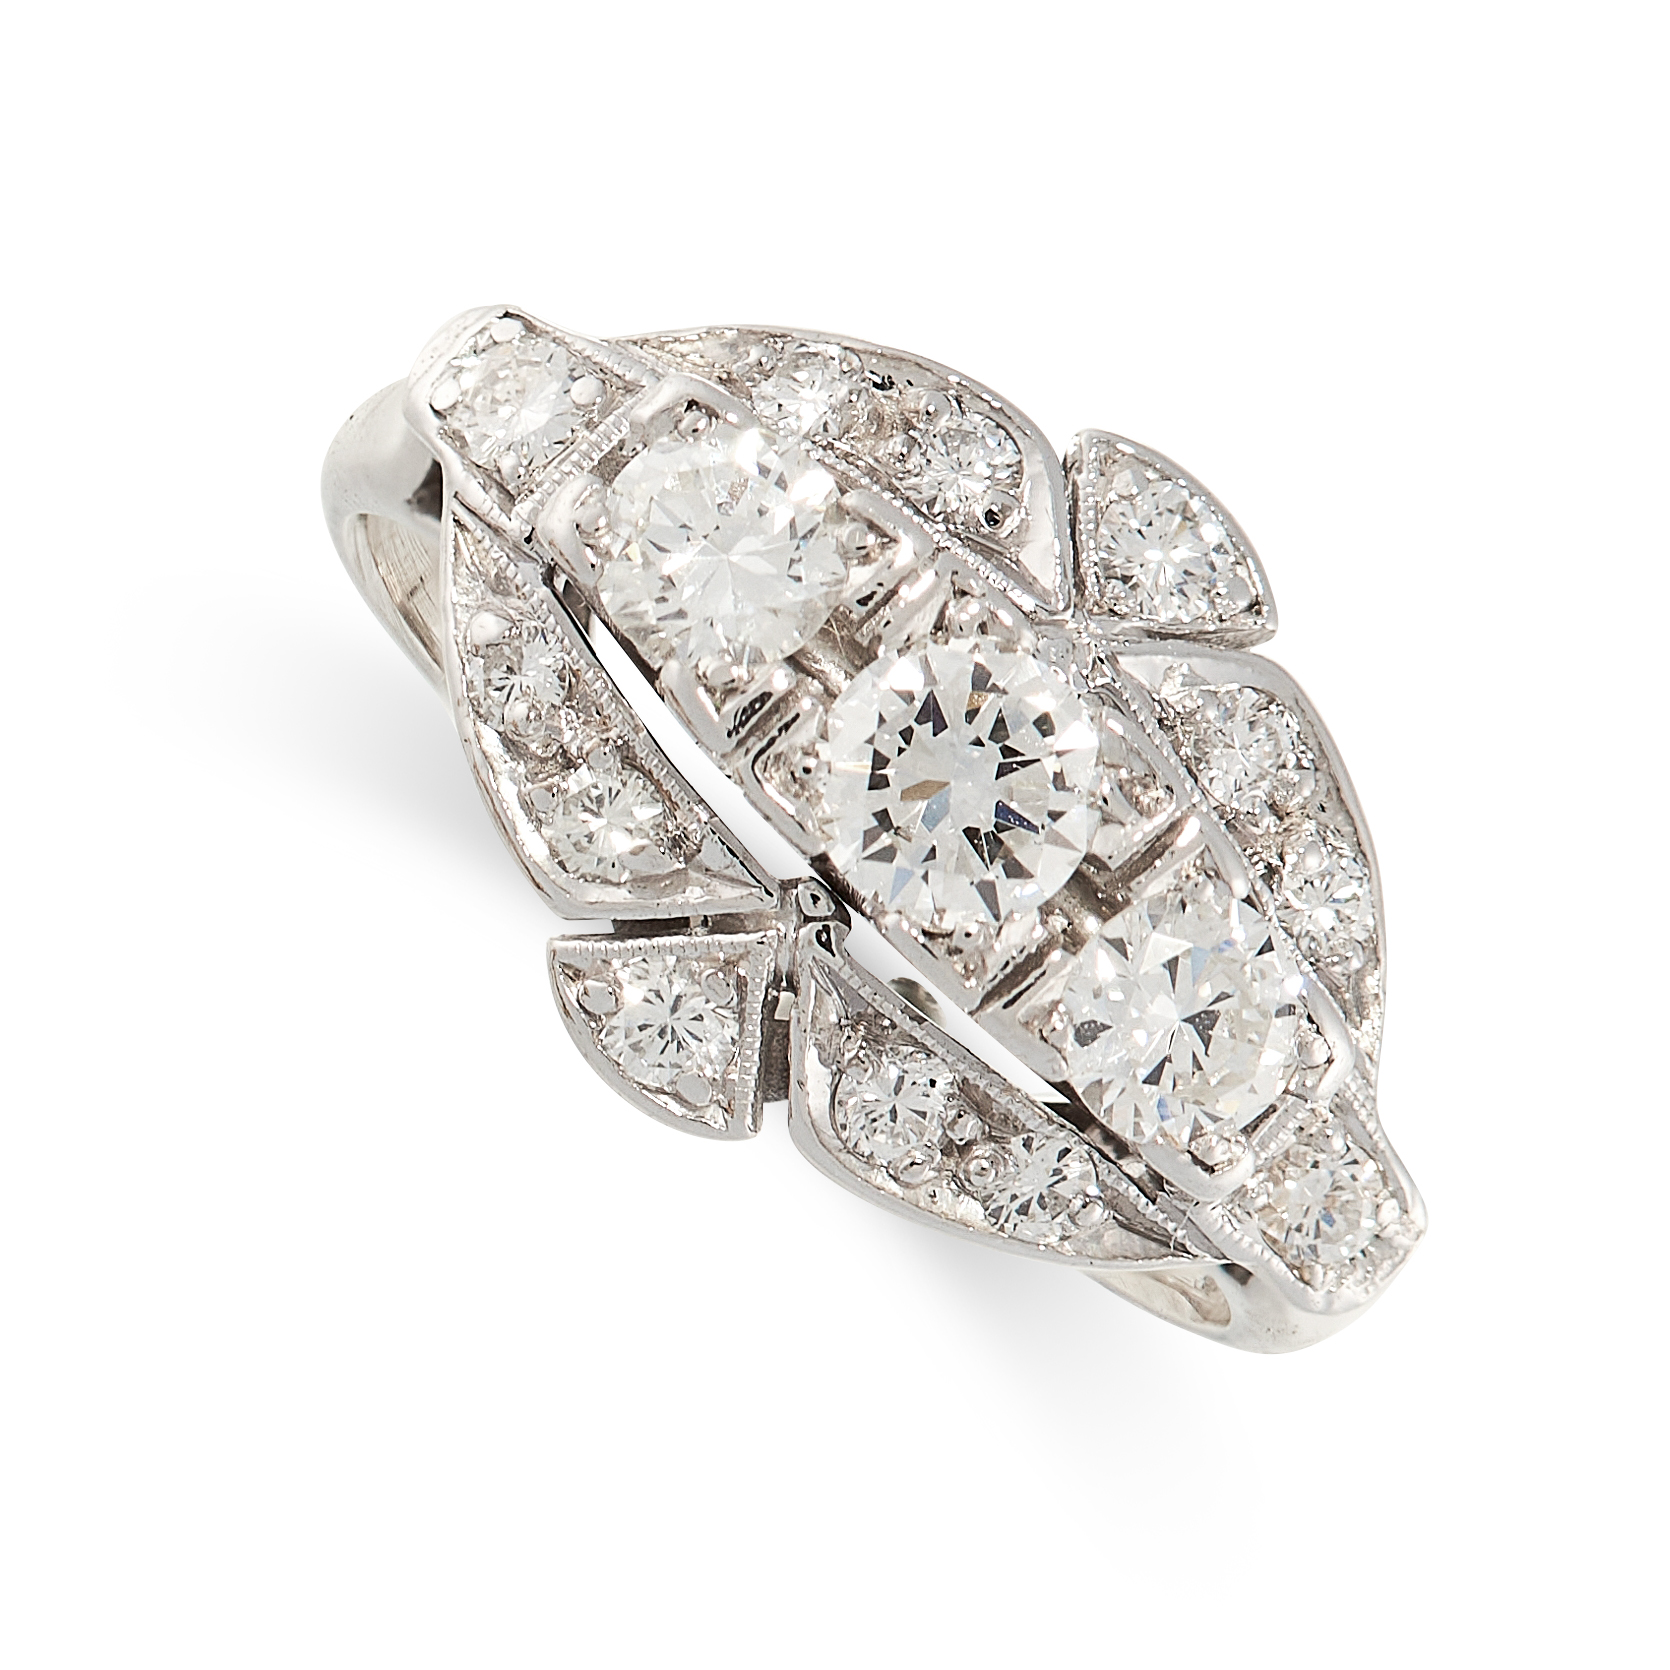 A DIAMOND DRESS RING the navette shaped face set with a trio of principal round cut diamonds